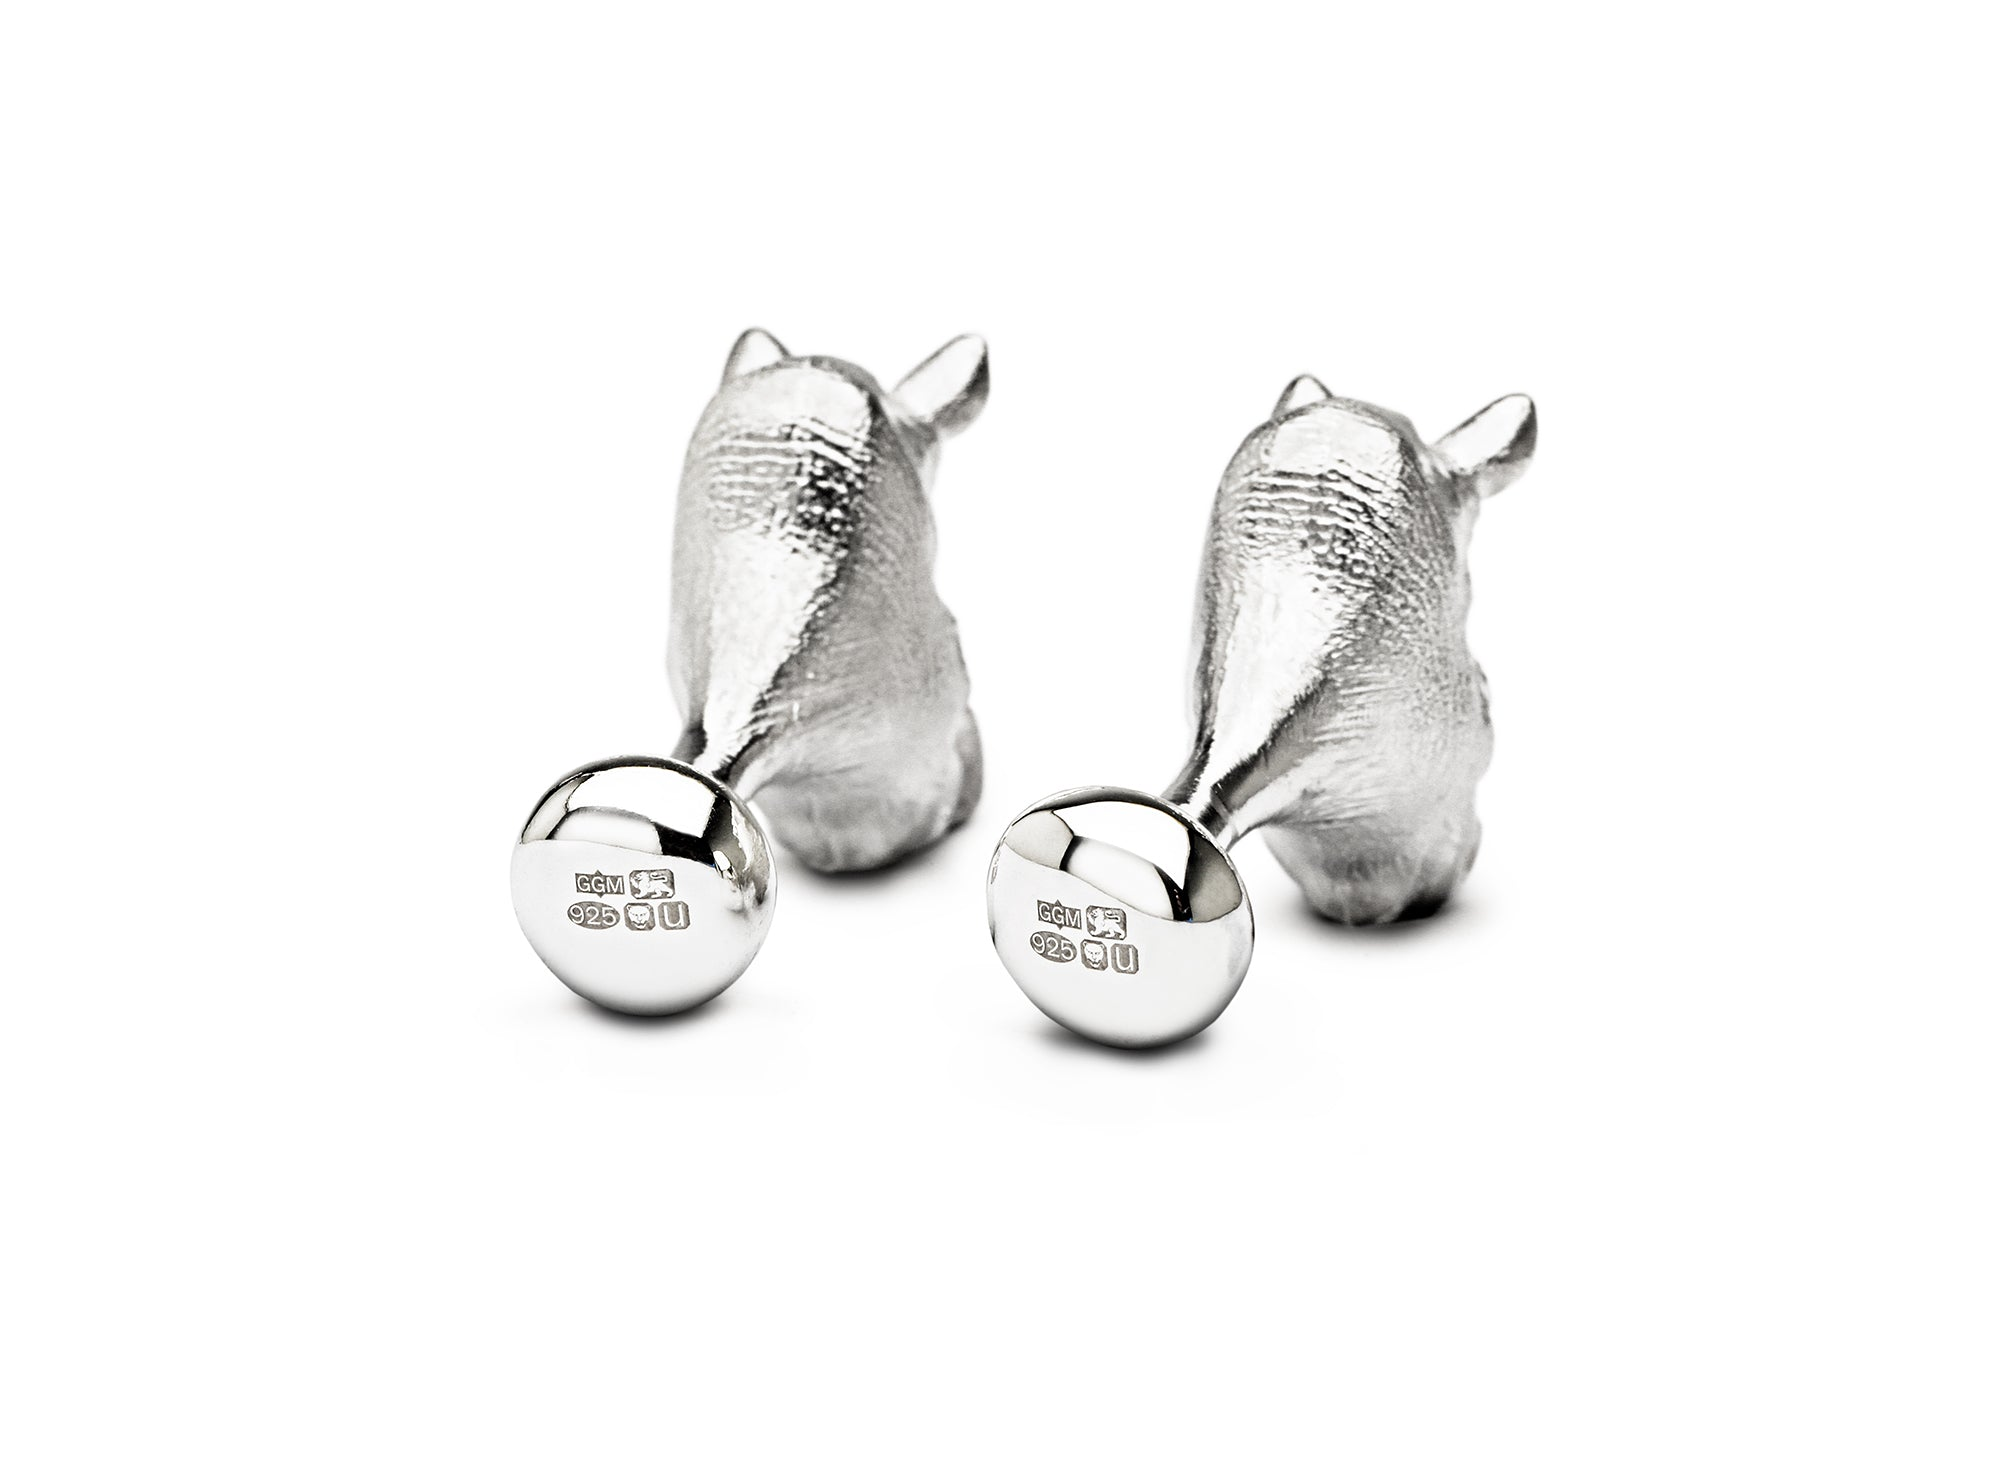 Kunene Rhino cufflinks for TUSK